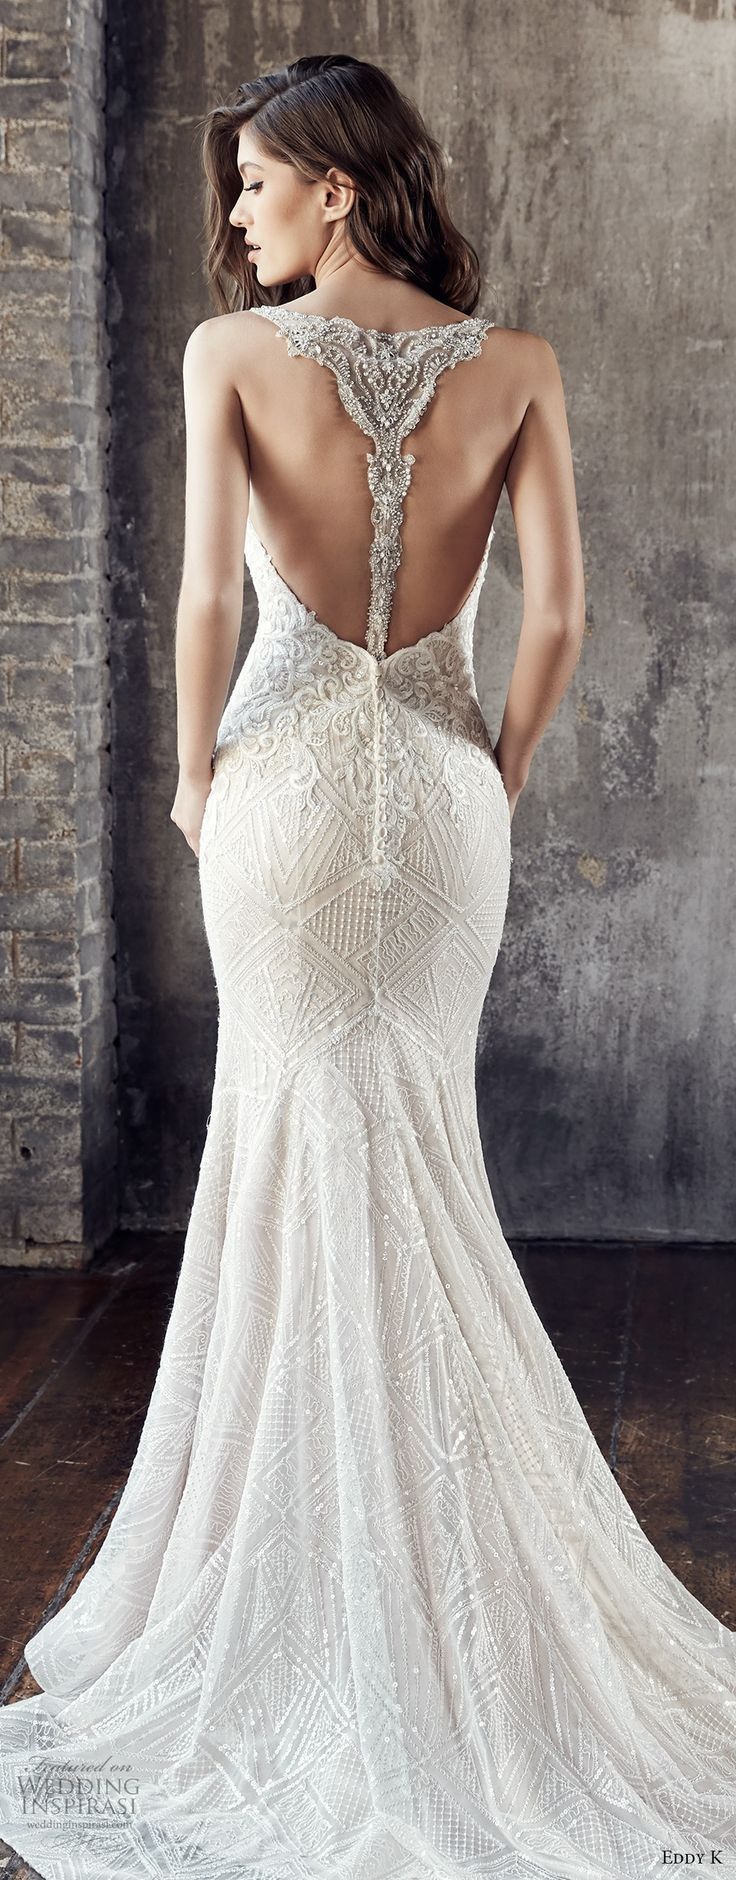 Best 25 couture wedding dresses ideas on pinterest pallas eddy k couture 2018 wedding dresses ombrellifo Image collections